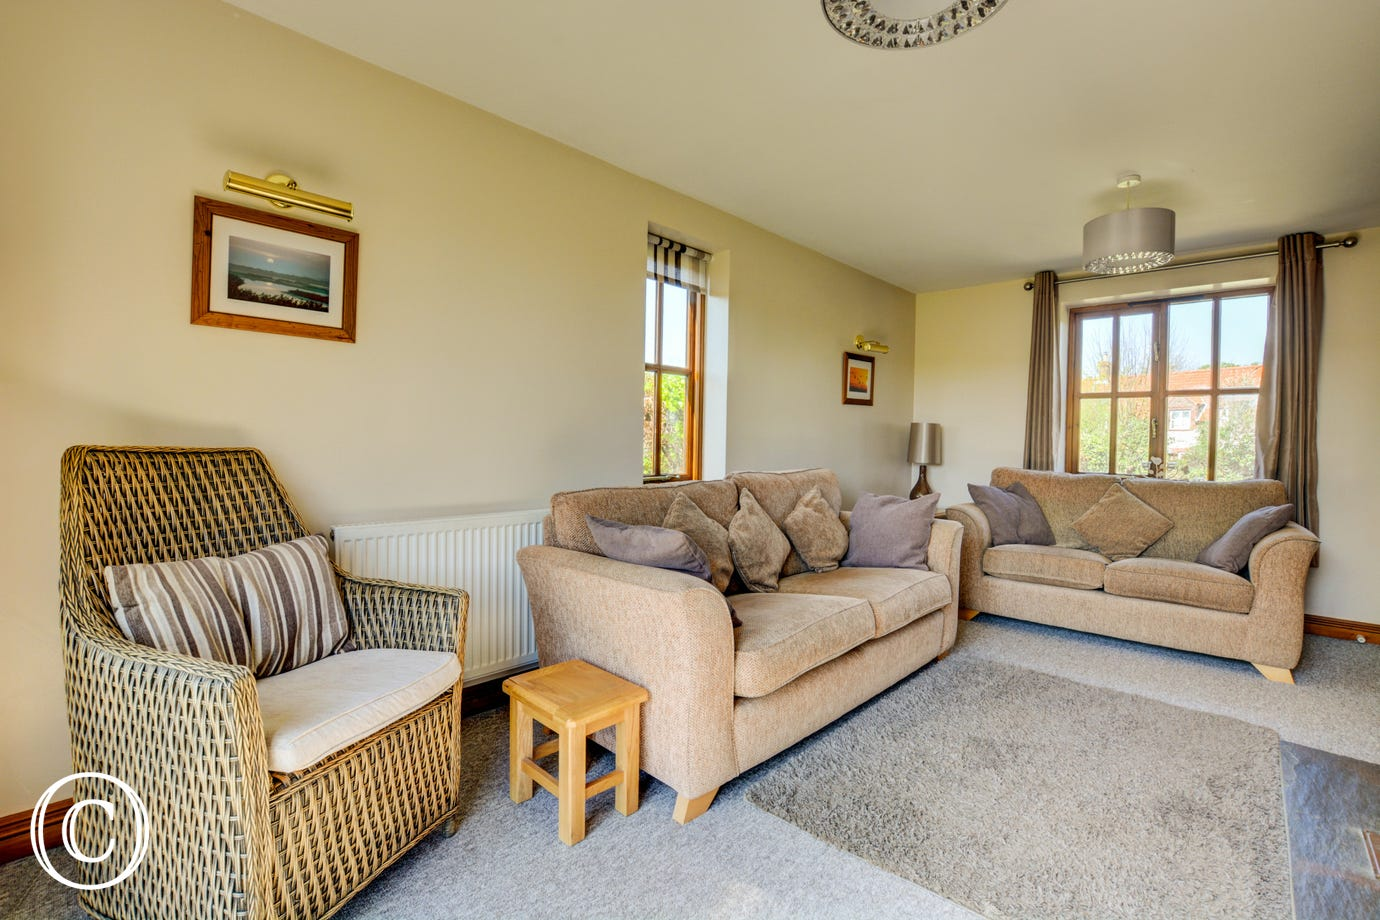 Sitting room with comfortable seating, room for all the family